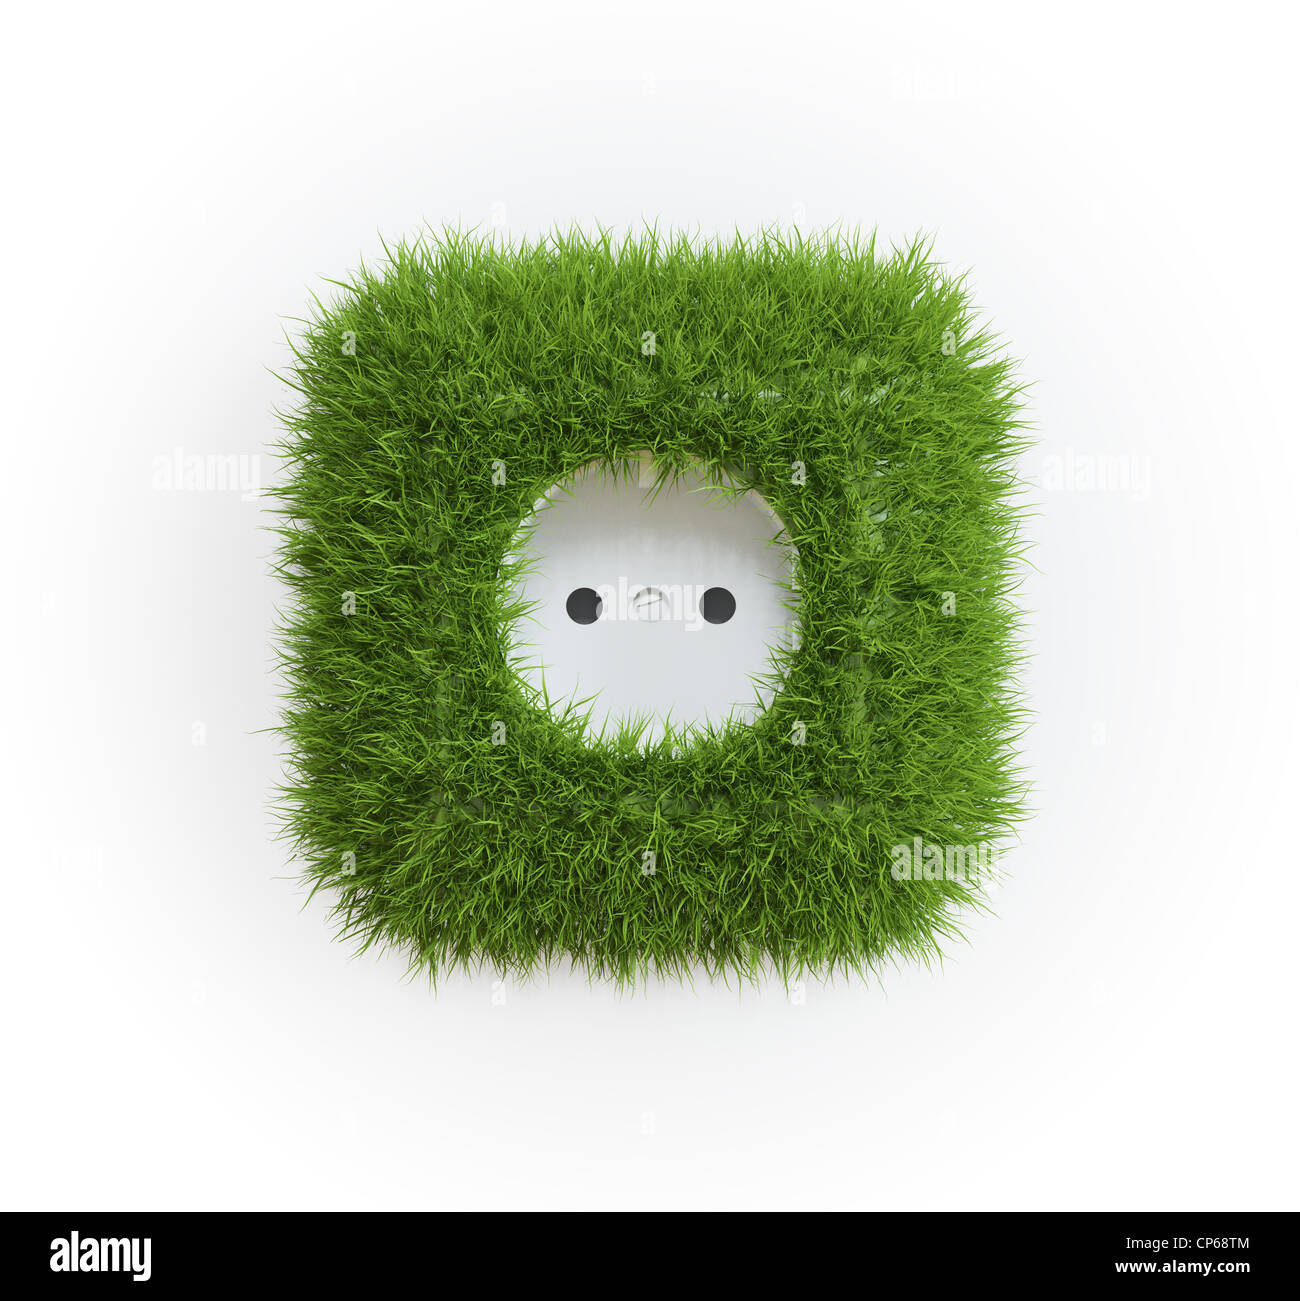 Grass covered outlet - renewable energy concept Stock Photo